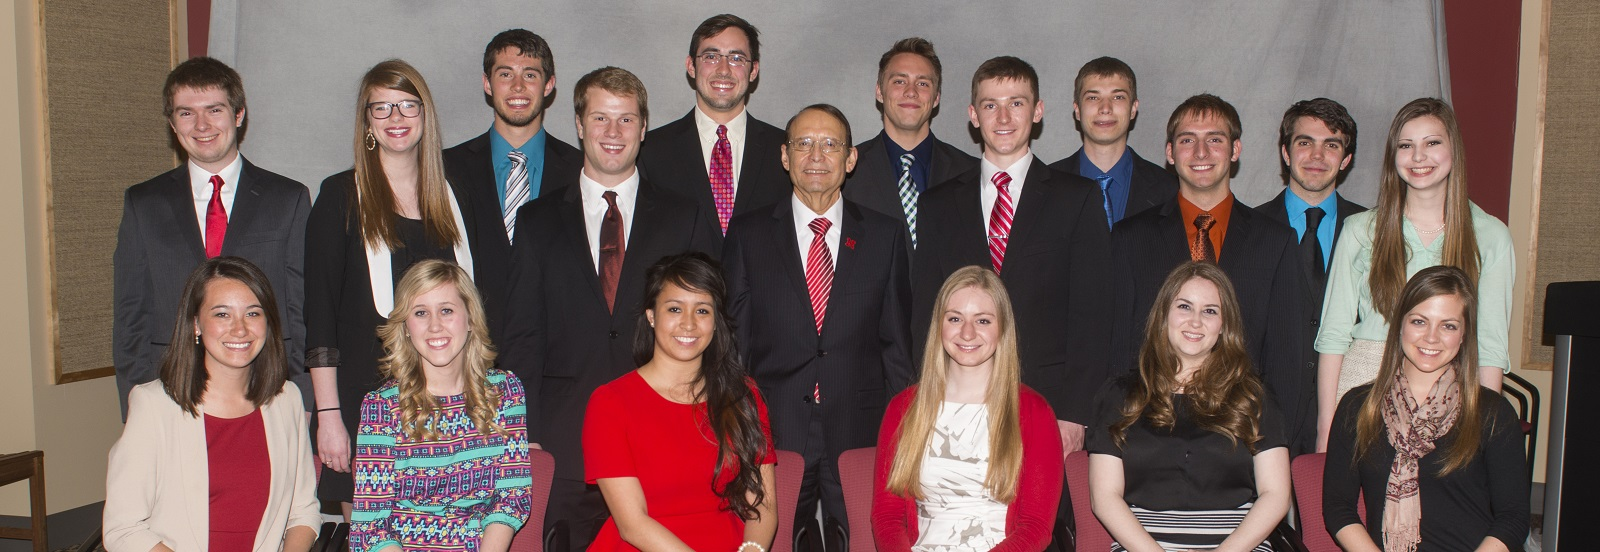 2013-2014 Outstanding Student Leader Award Semifinalists